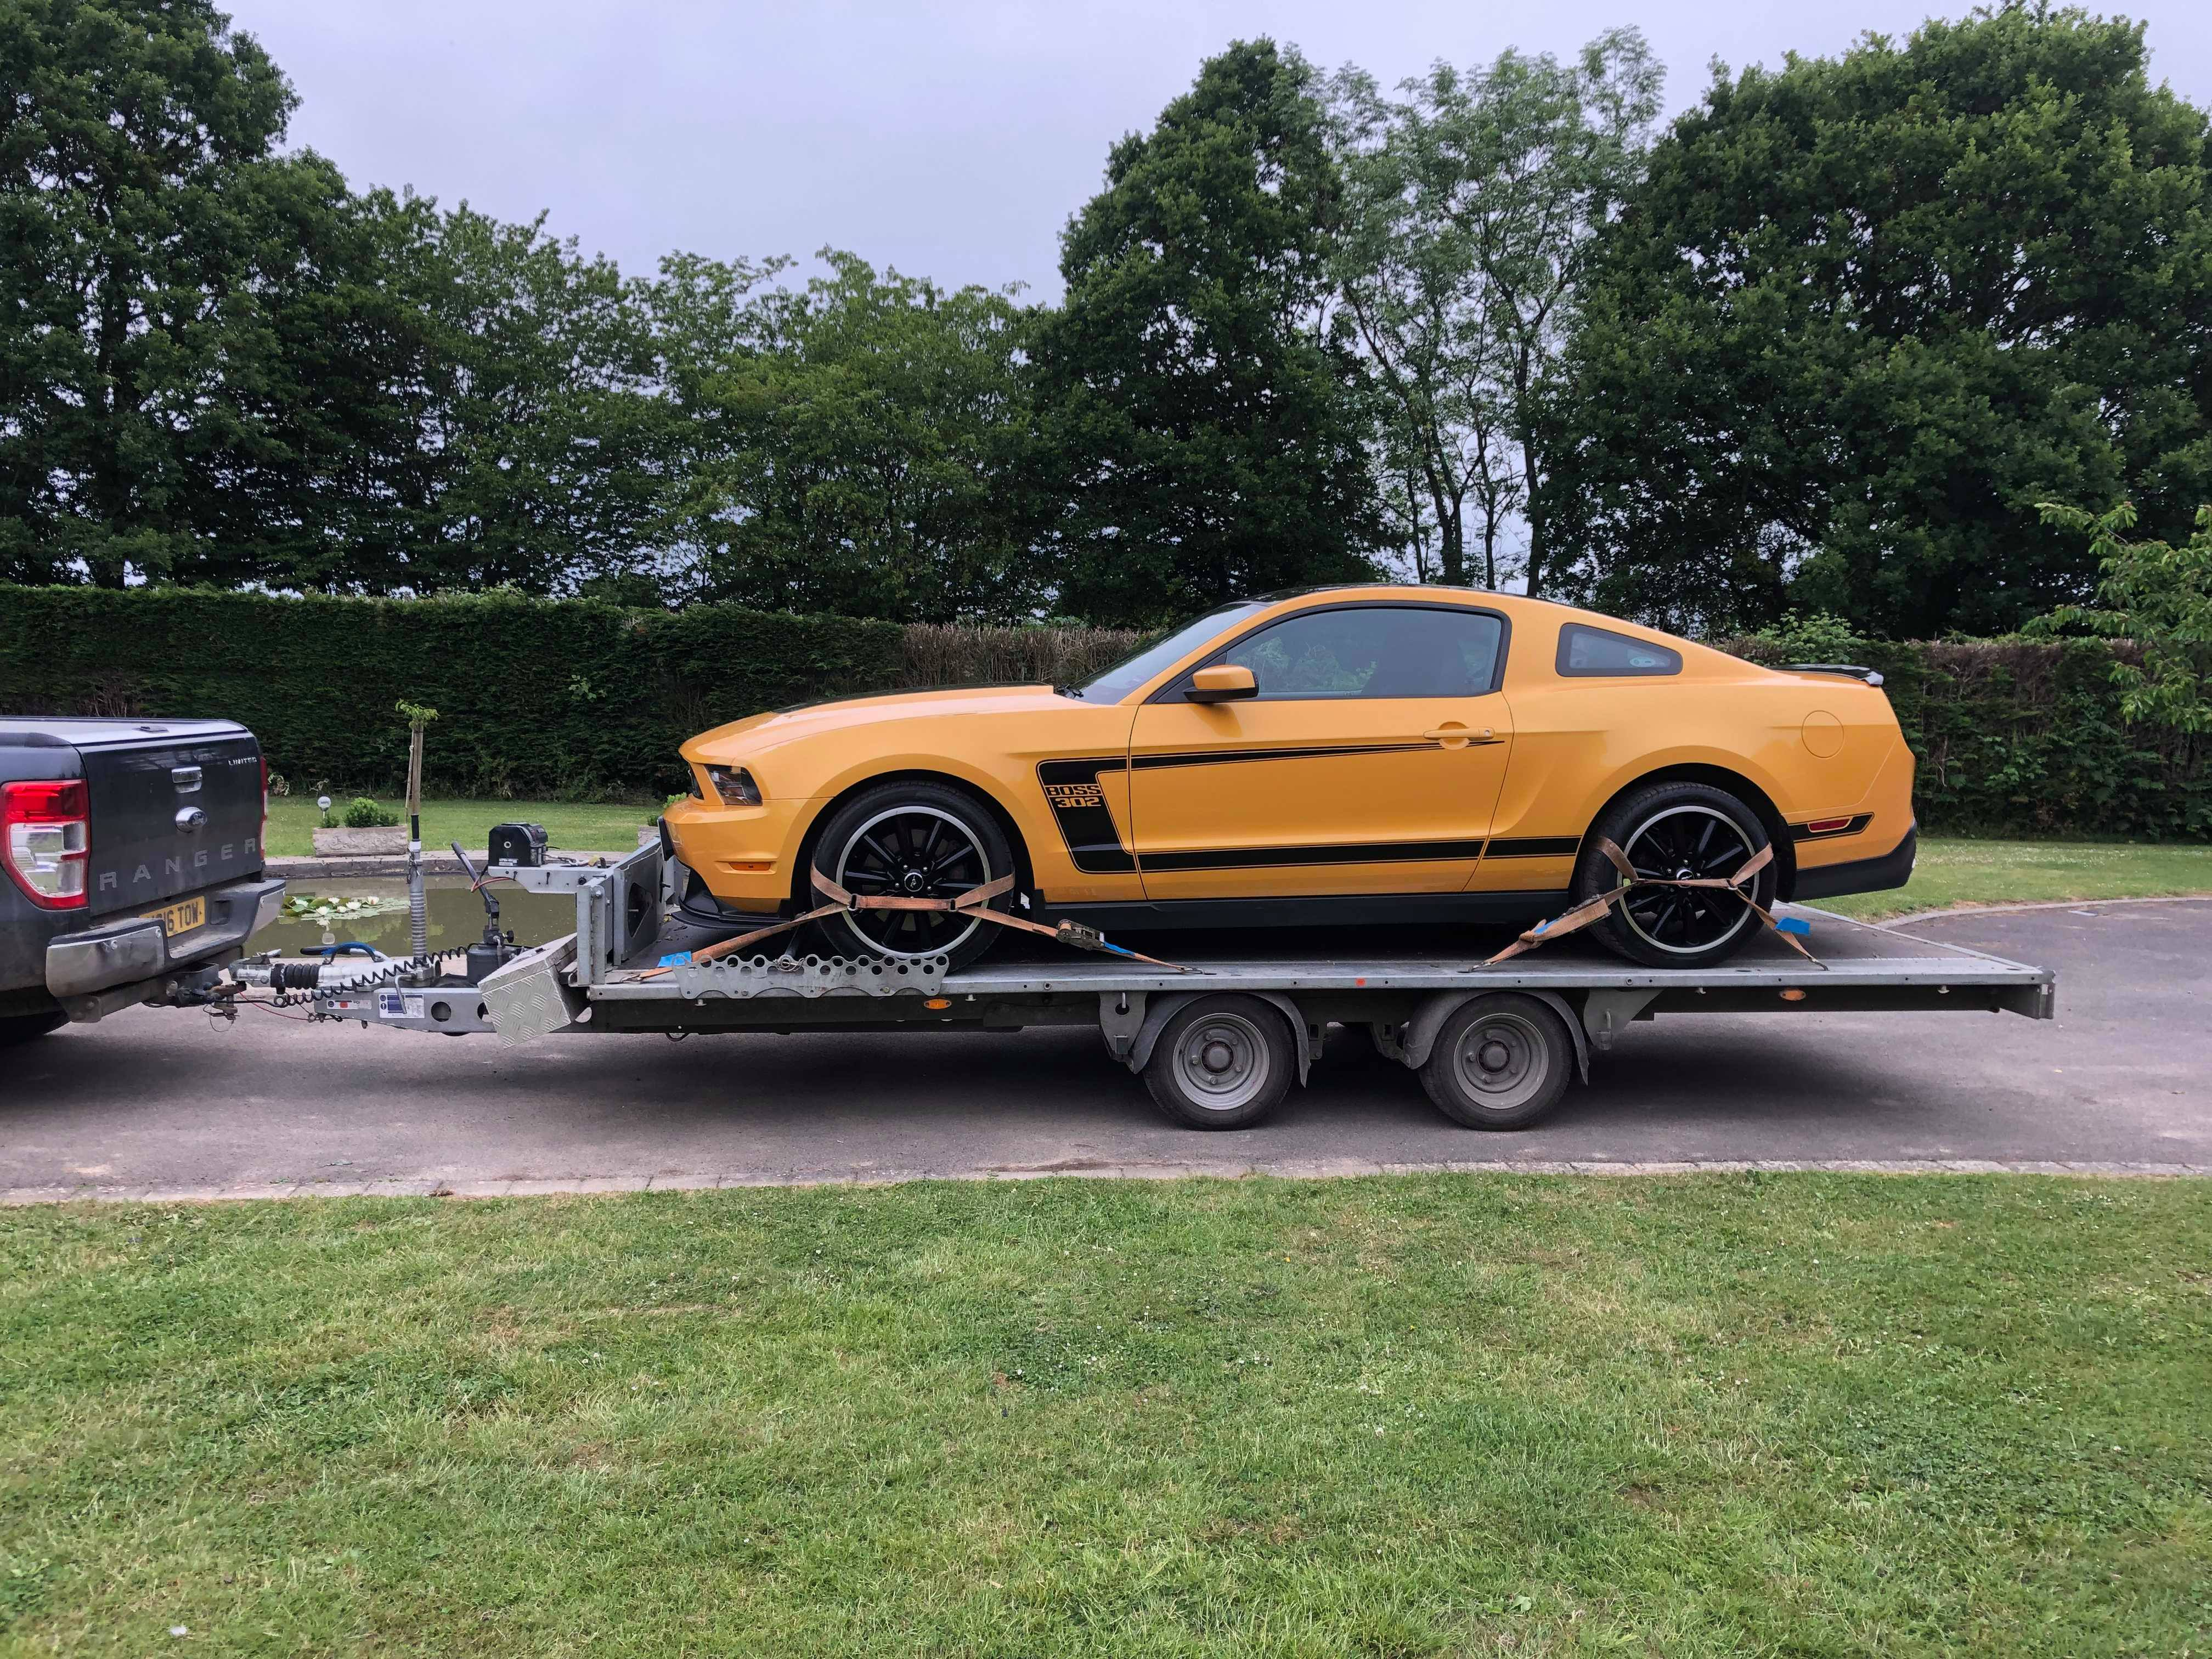 A 16.5 x 6.5 ft Tilt bed trailer holding a Yellow Boss Mustang strapped down securely being towed by a Ford Ranger truck.